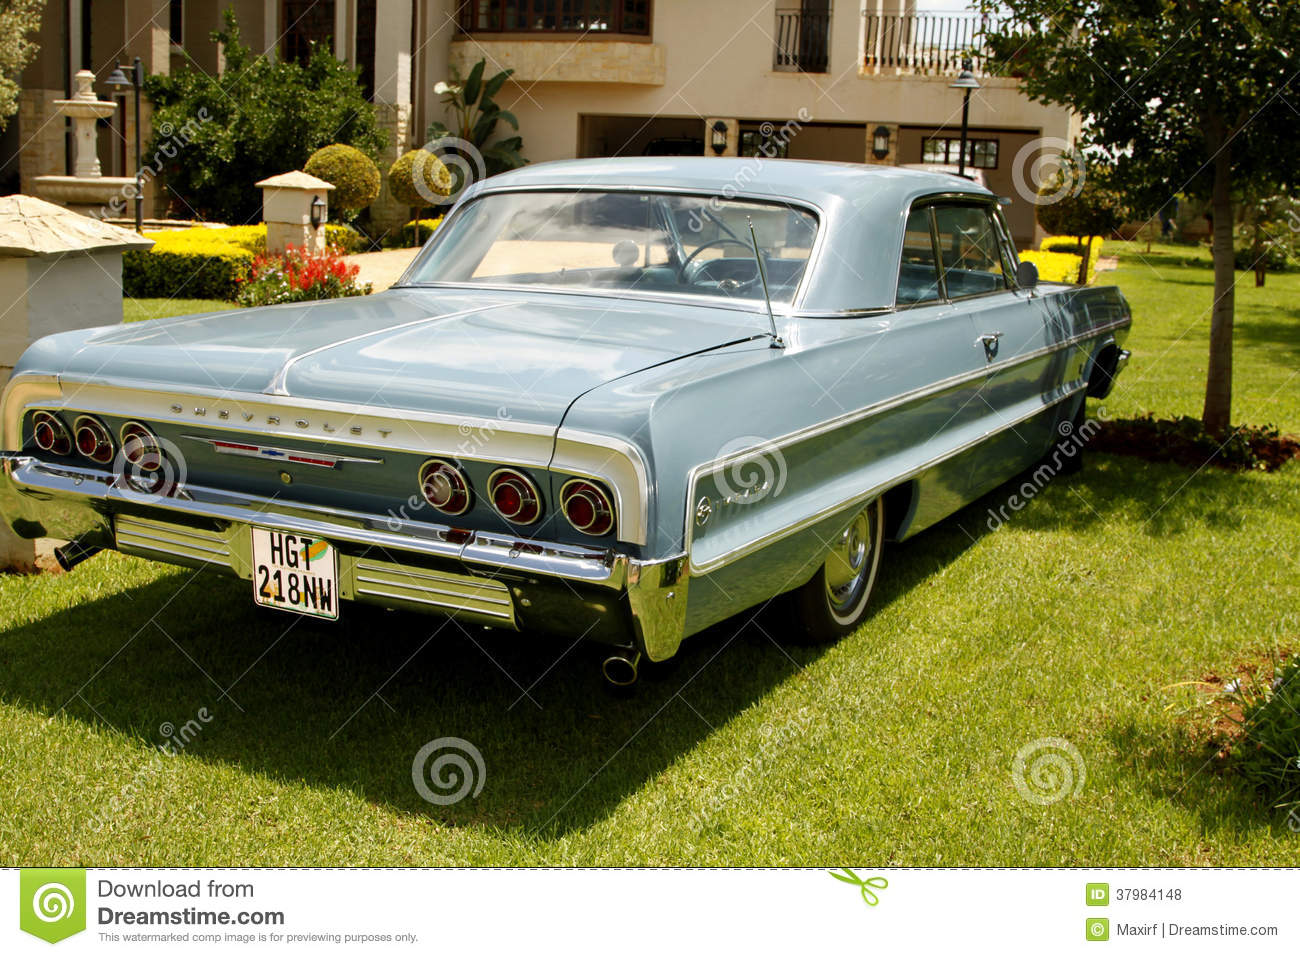 Used 2014 Chevy Impala >> Vintage Car 1964 Chevrolet Impala Coupe Editorial Stock Photo - Image: 37984148